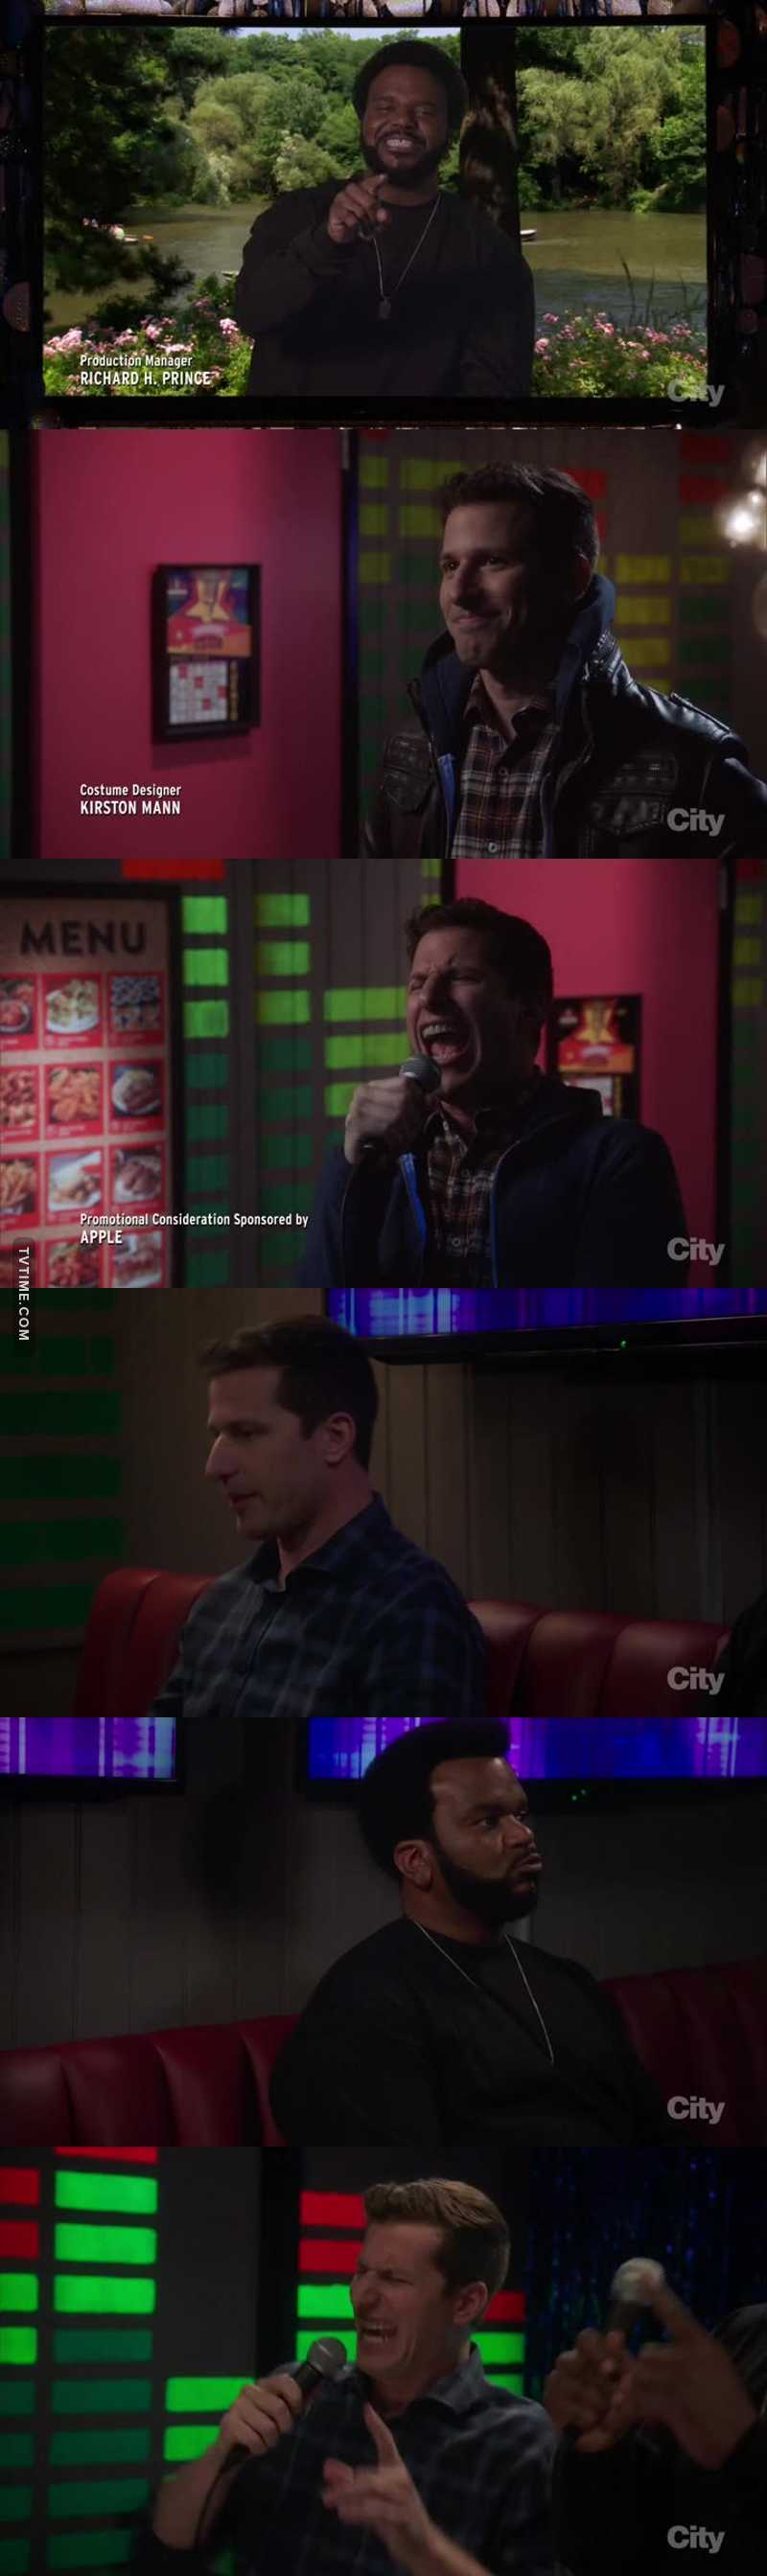 AHAHAHAHAH THE ENDING  AND THE KARAOKE PART SERIOUSLY THIS SHOW IS SO FUNNY XD